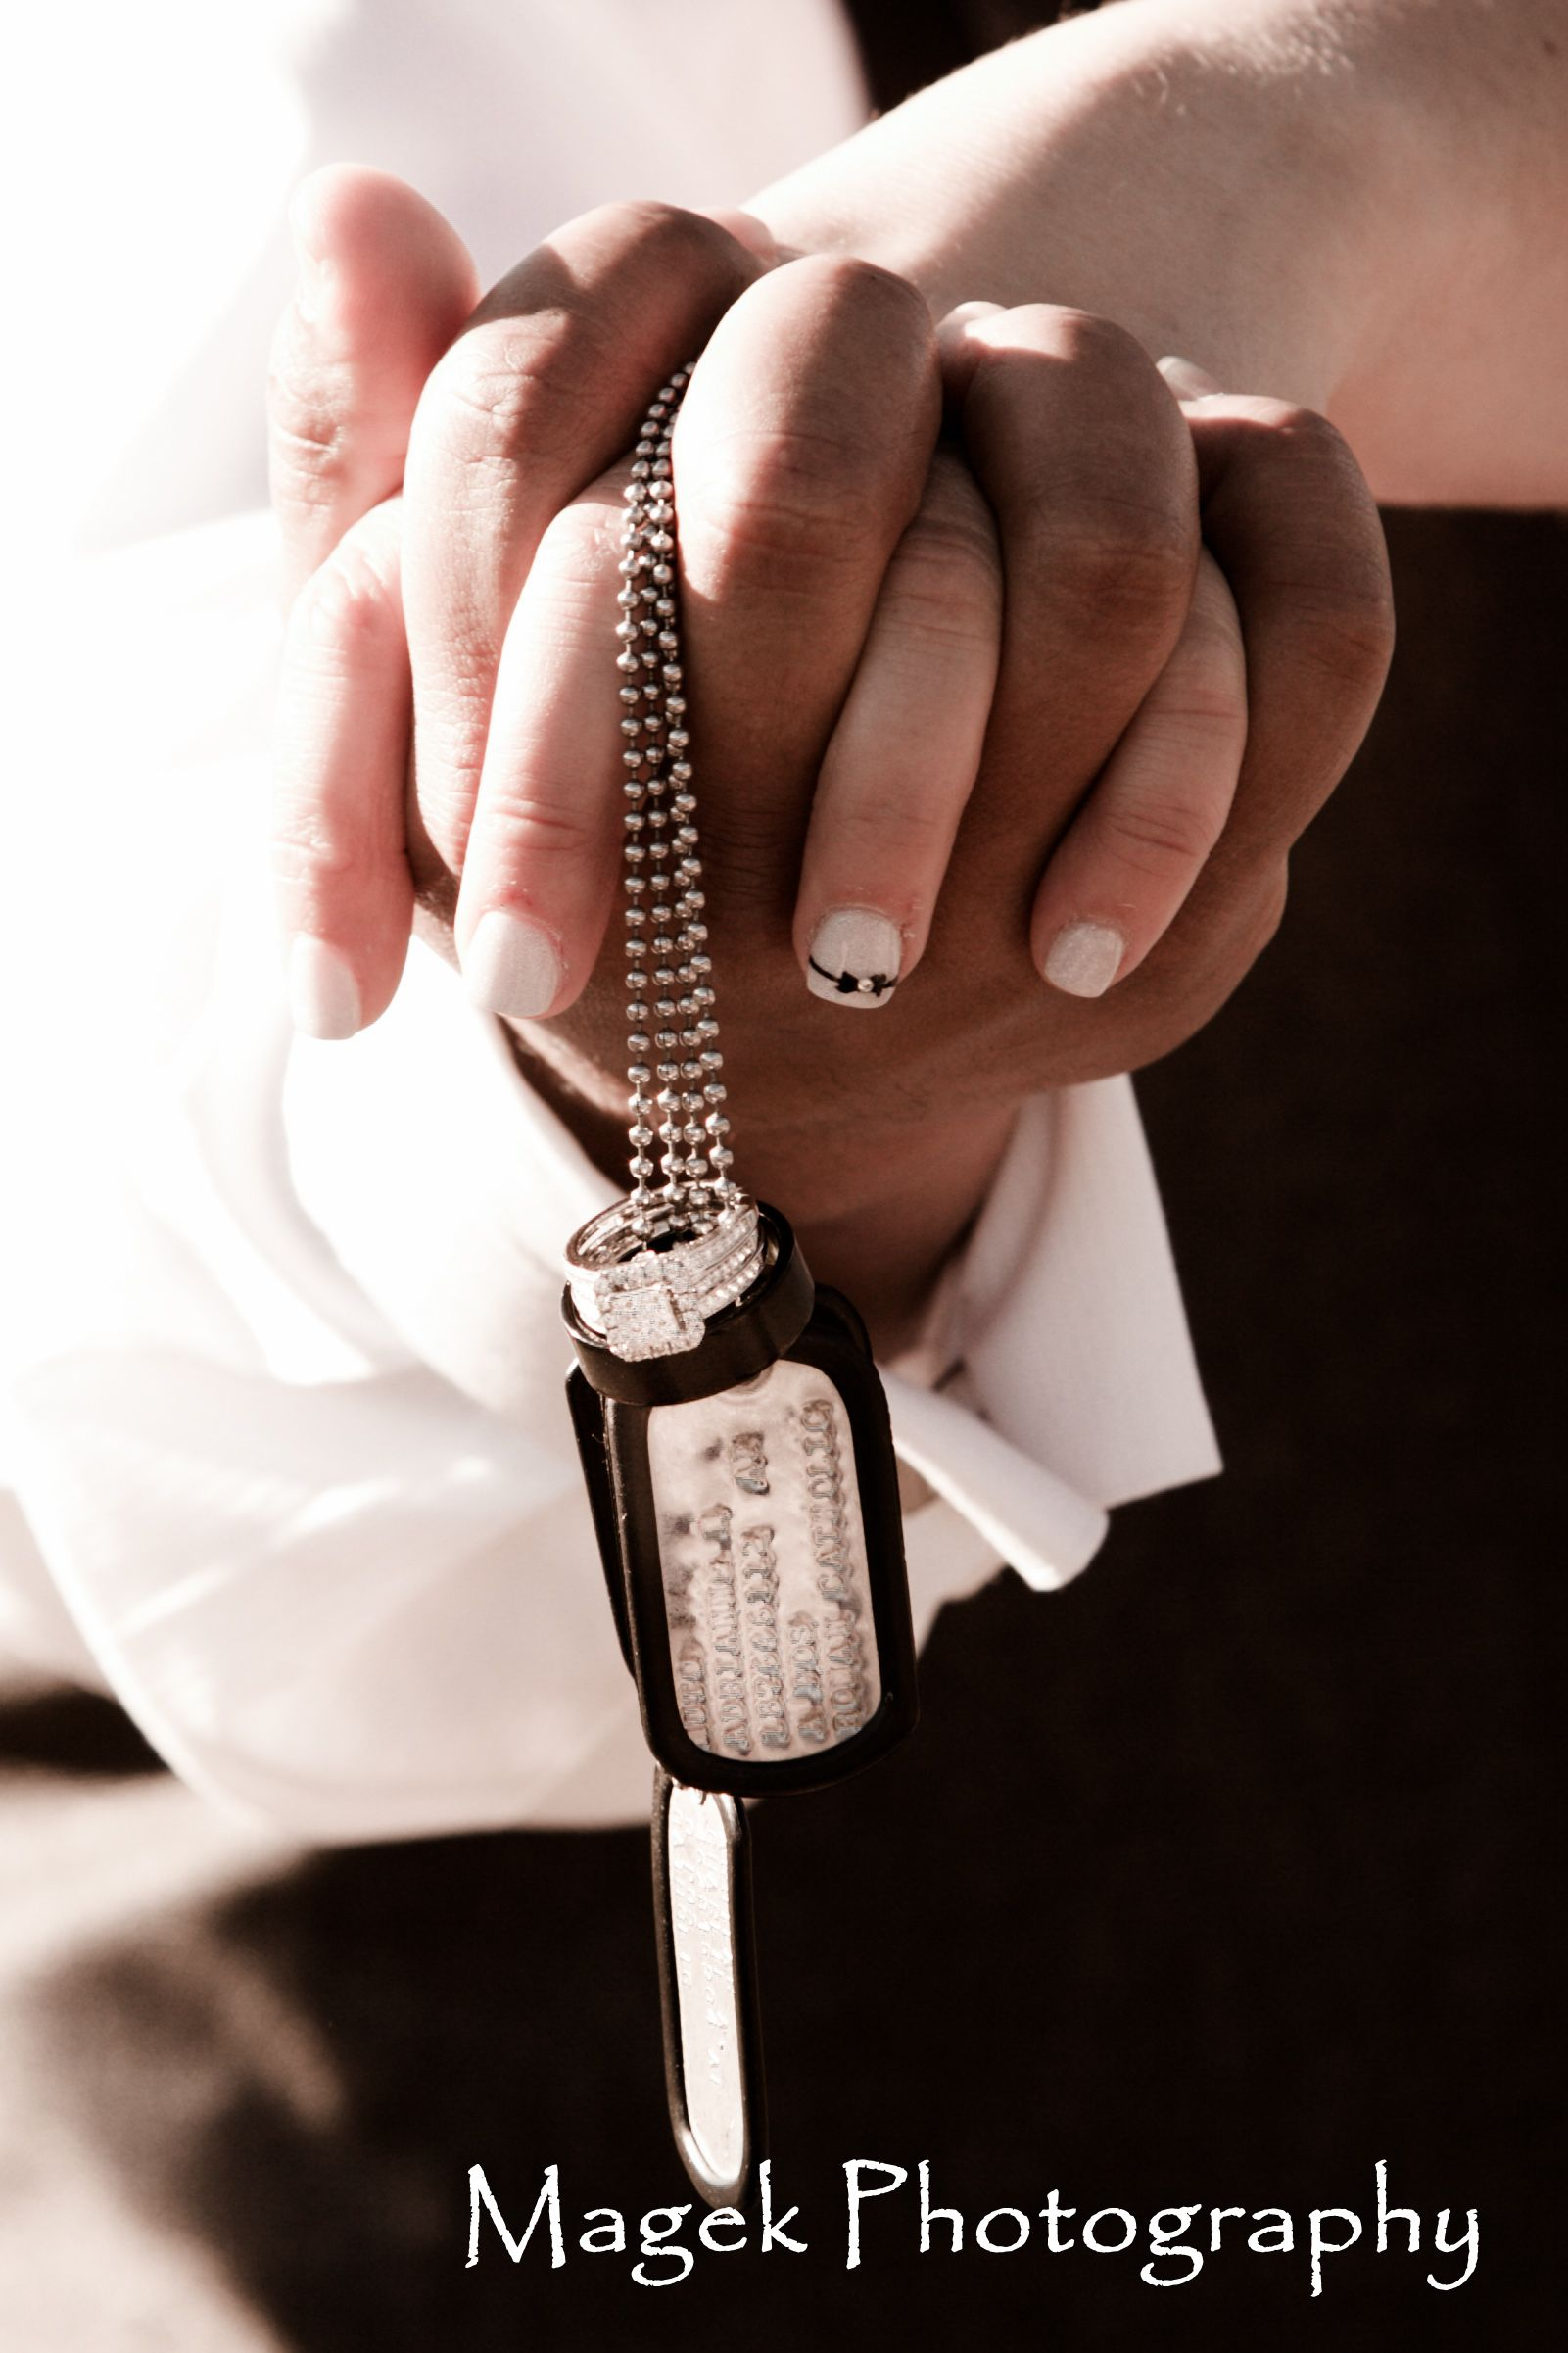 military tags and wedding rings magek photography wwwmagekphotocom click to see - Military Wedding Rings